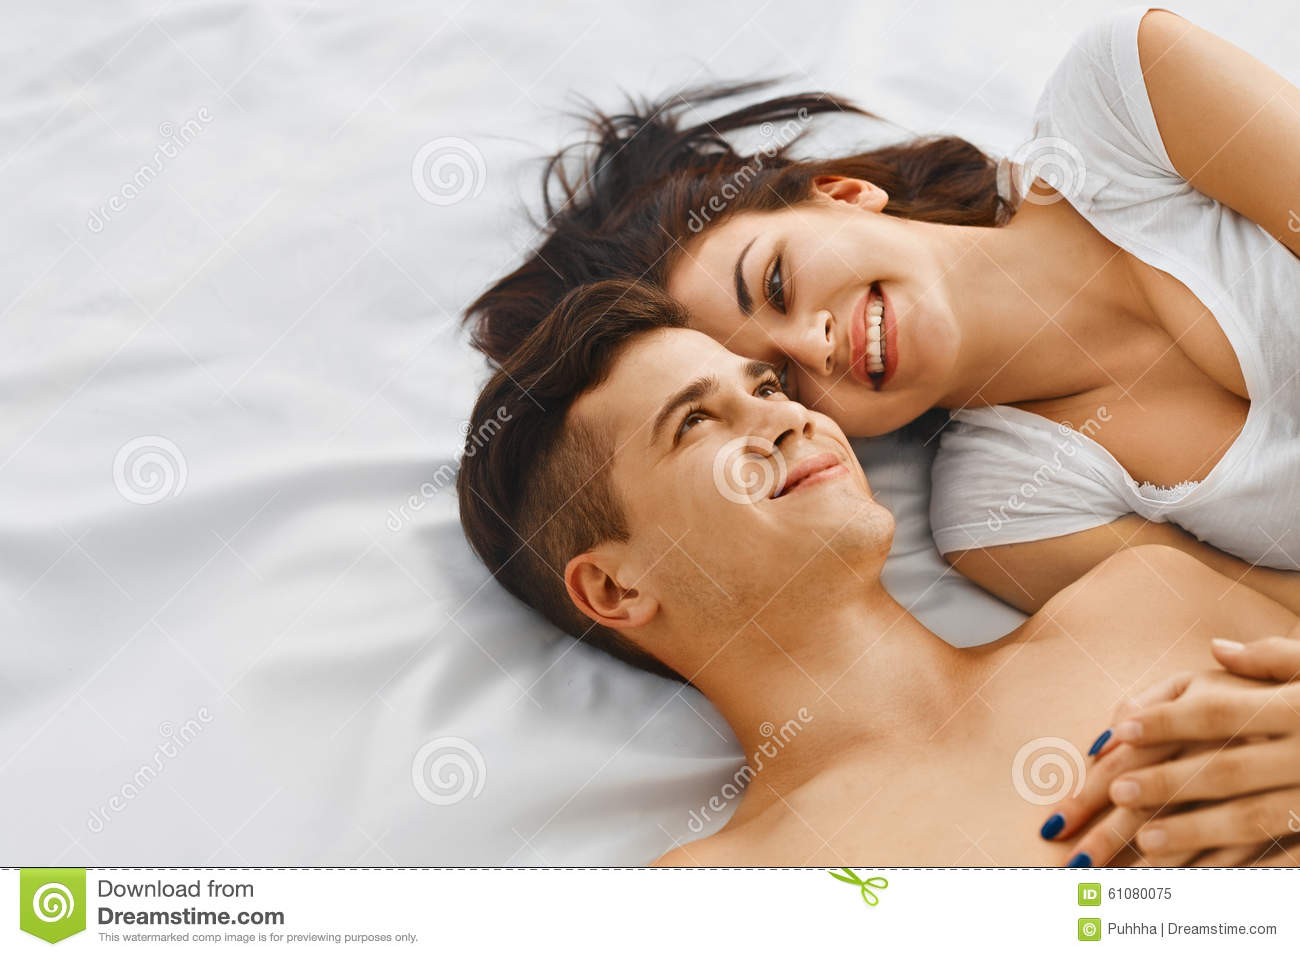 Lovely Couple In Bed Lying In Bedroom Lovely Couple In Bed Stock Photo Image 61076521